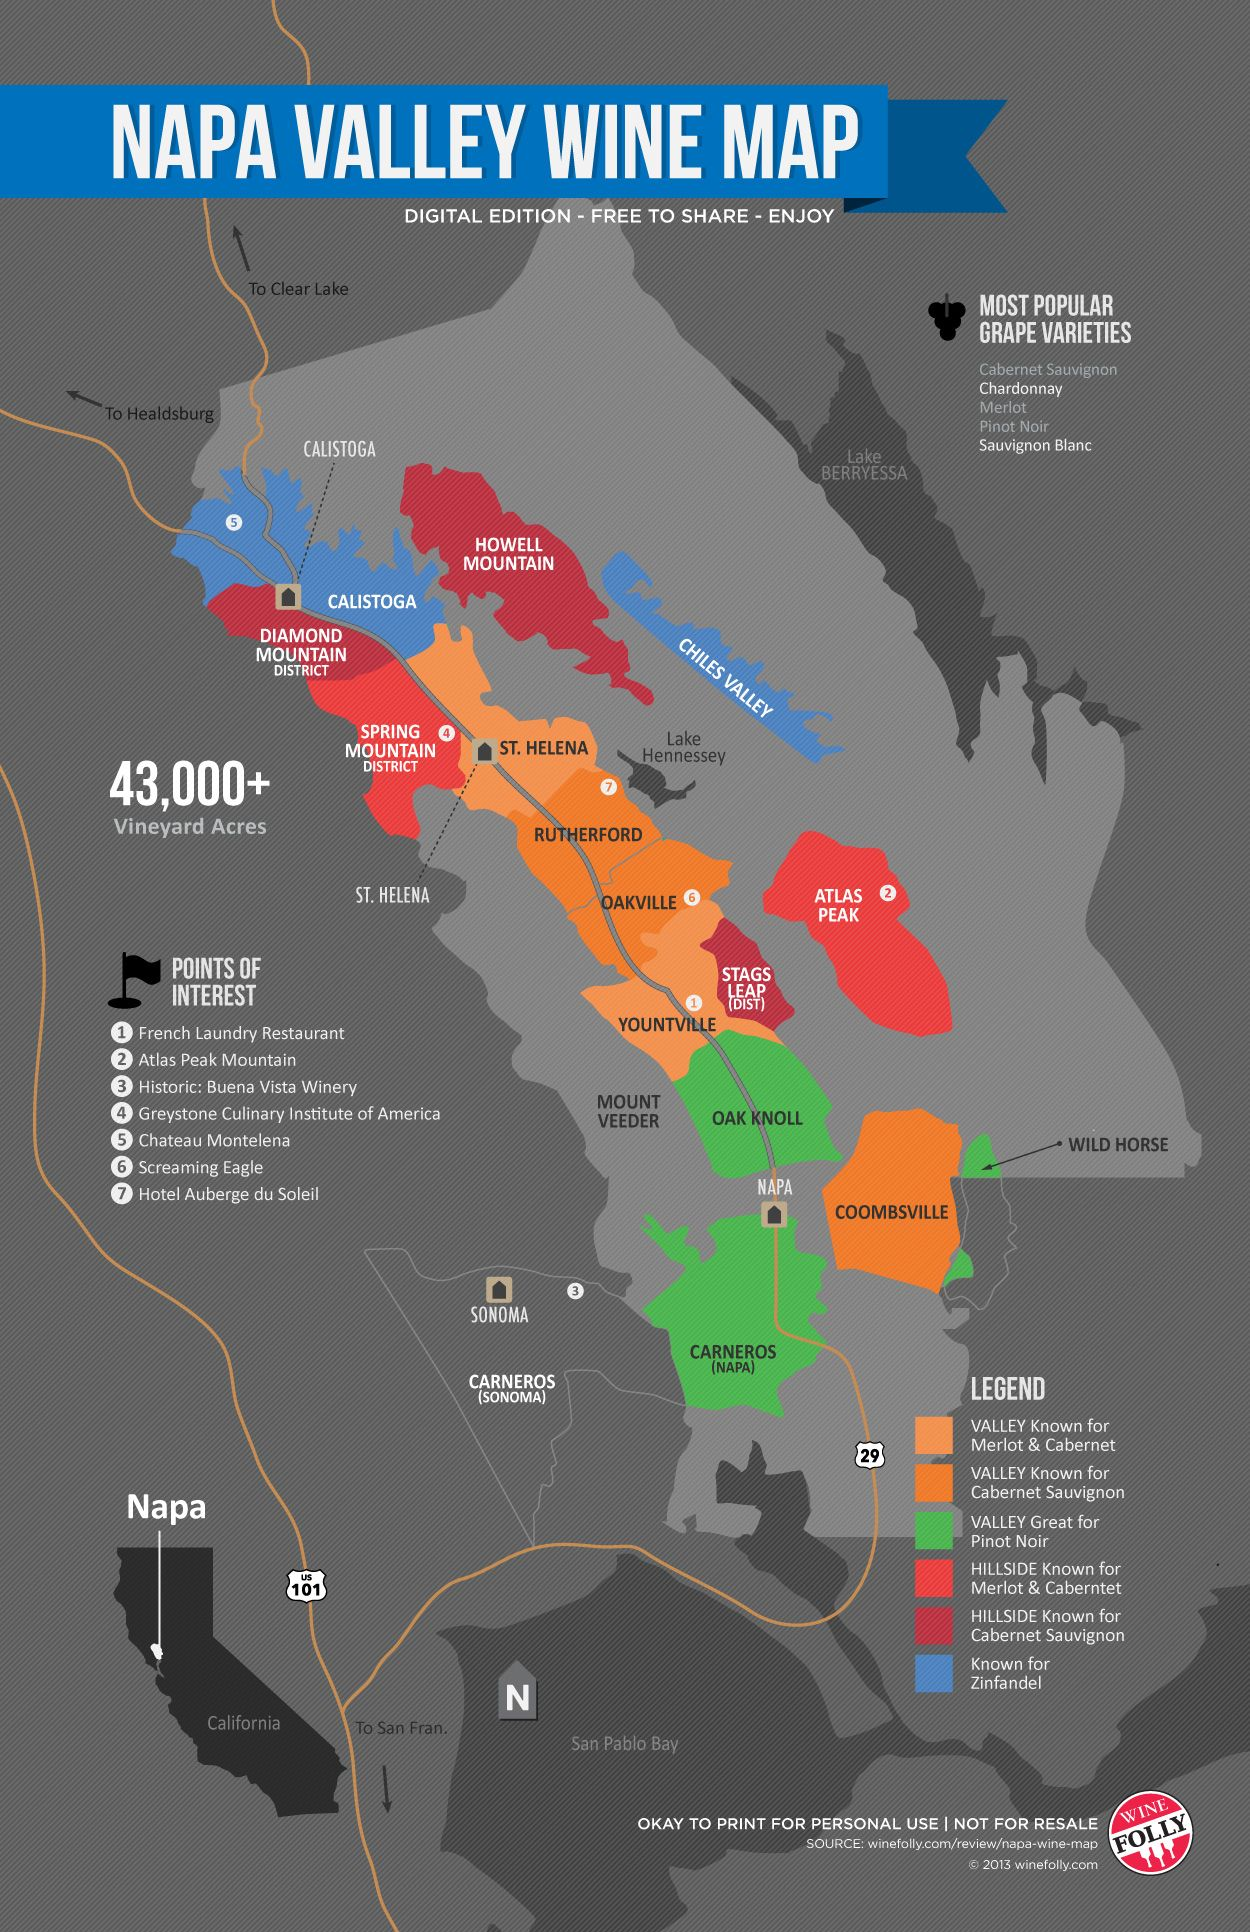 Napa Valley AVA Summary Regional Wine Guide Wine Wine guide and